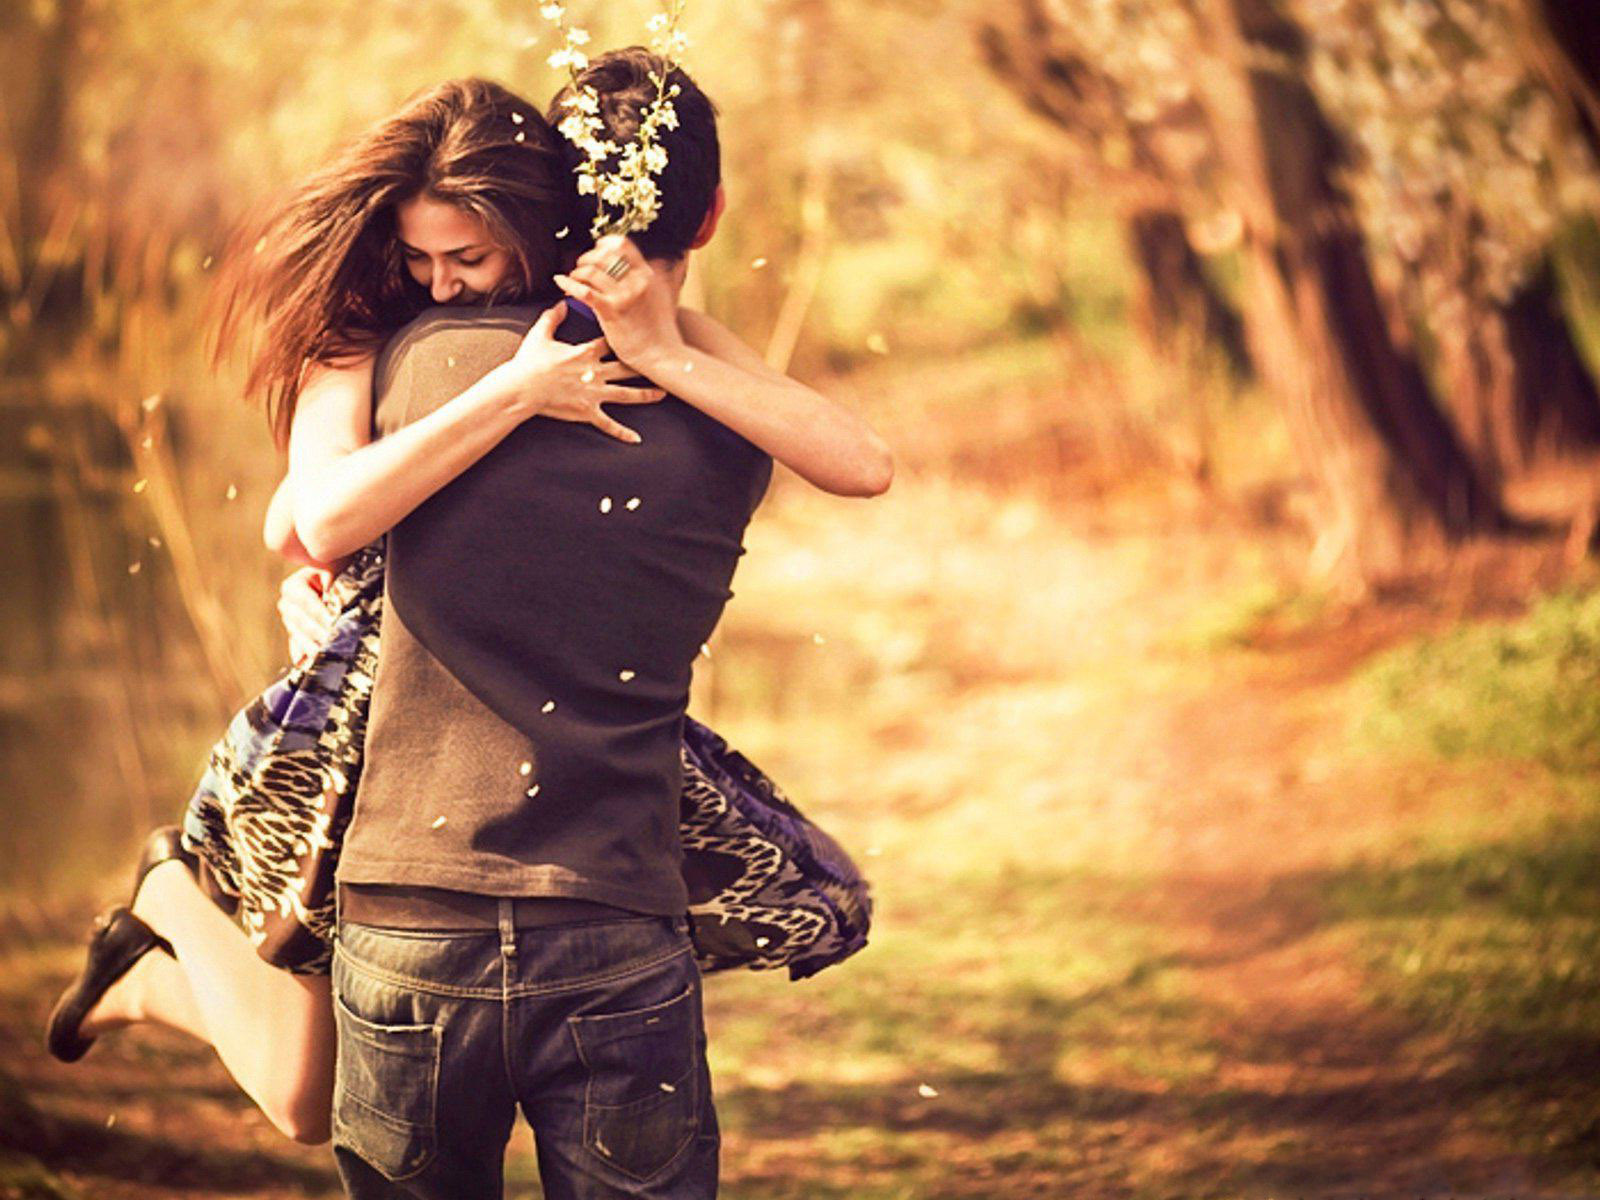 Download wallpaper couple beautiful